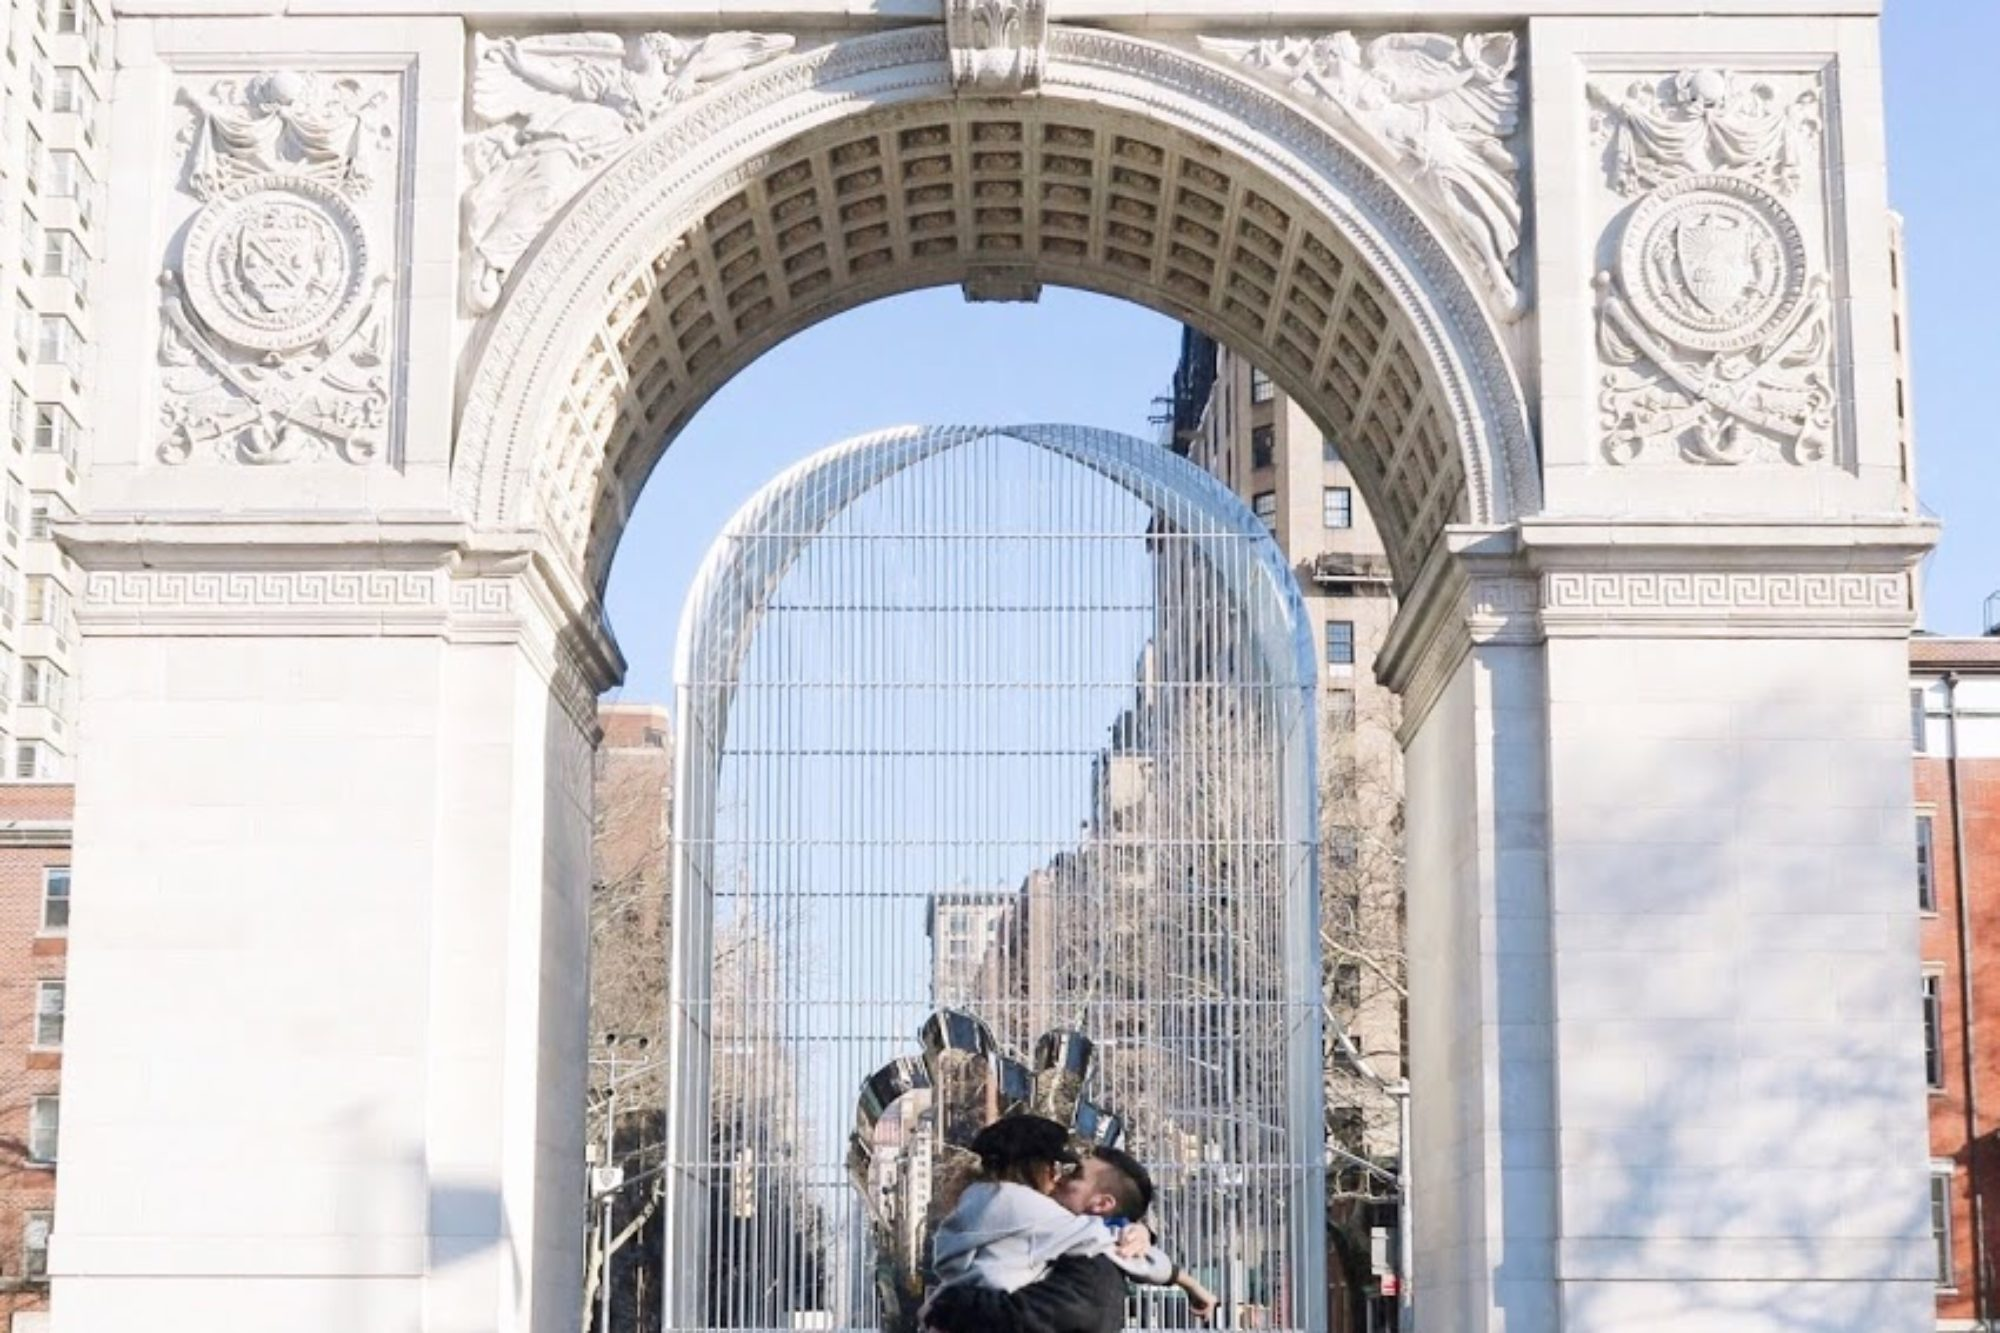 4 DAYS IN NYC   Where we shopped, ate & stayed